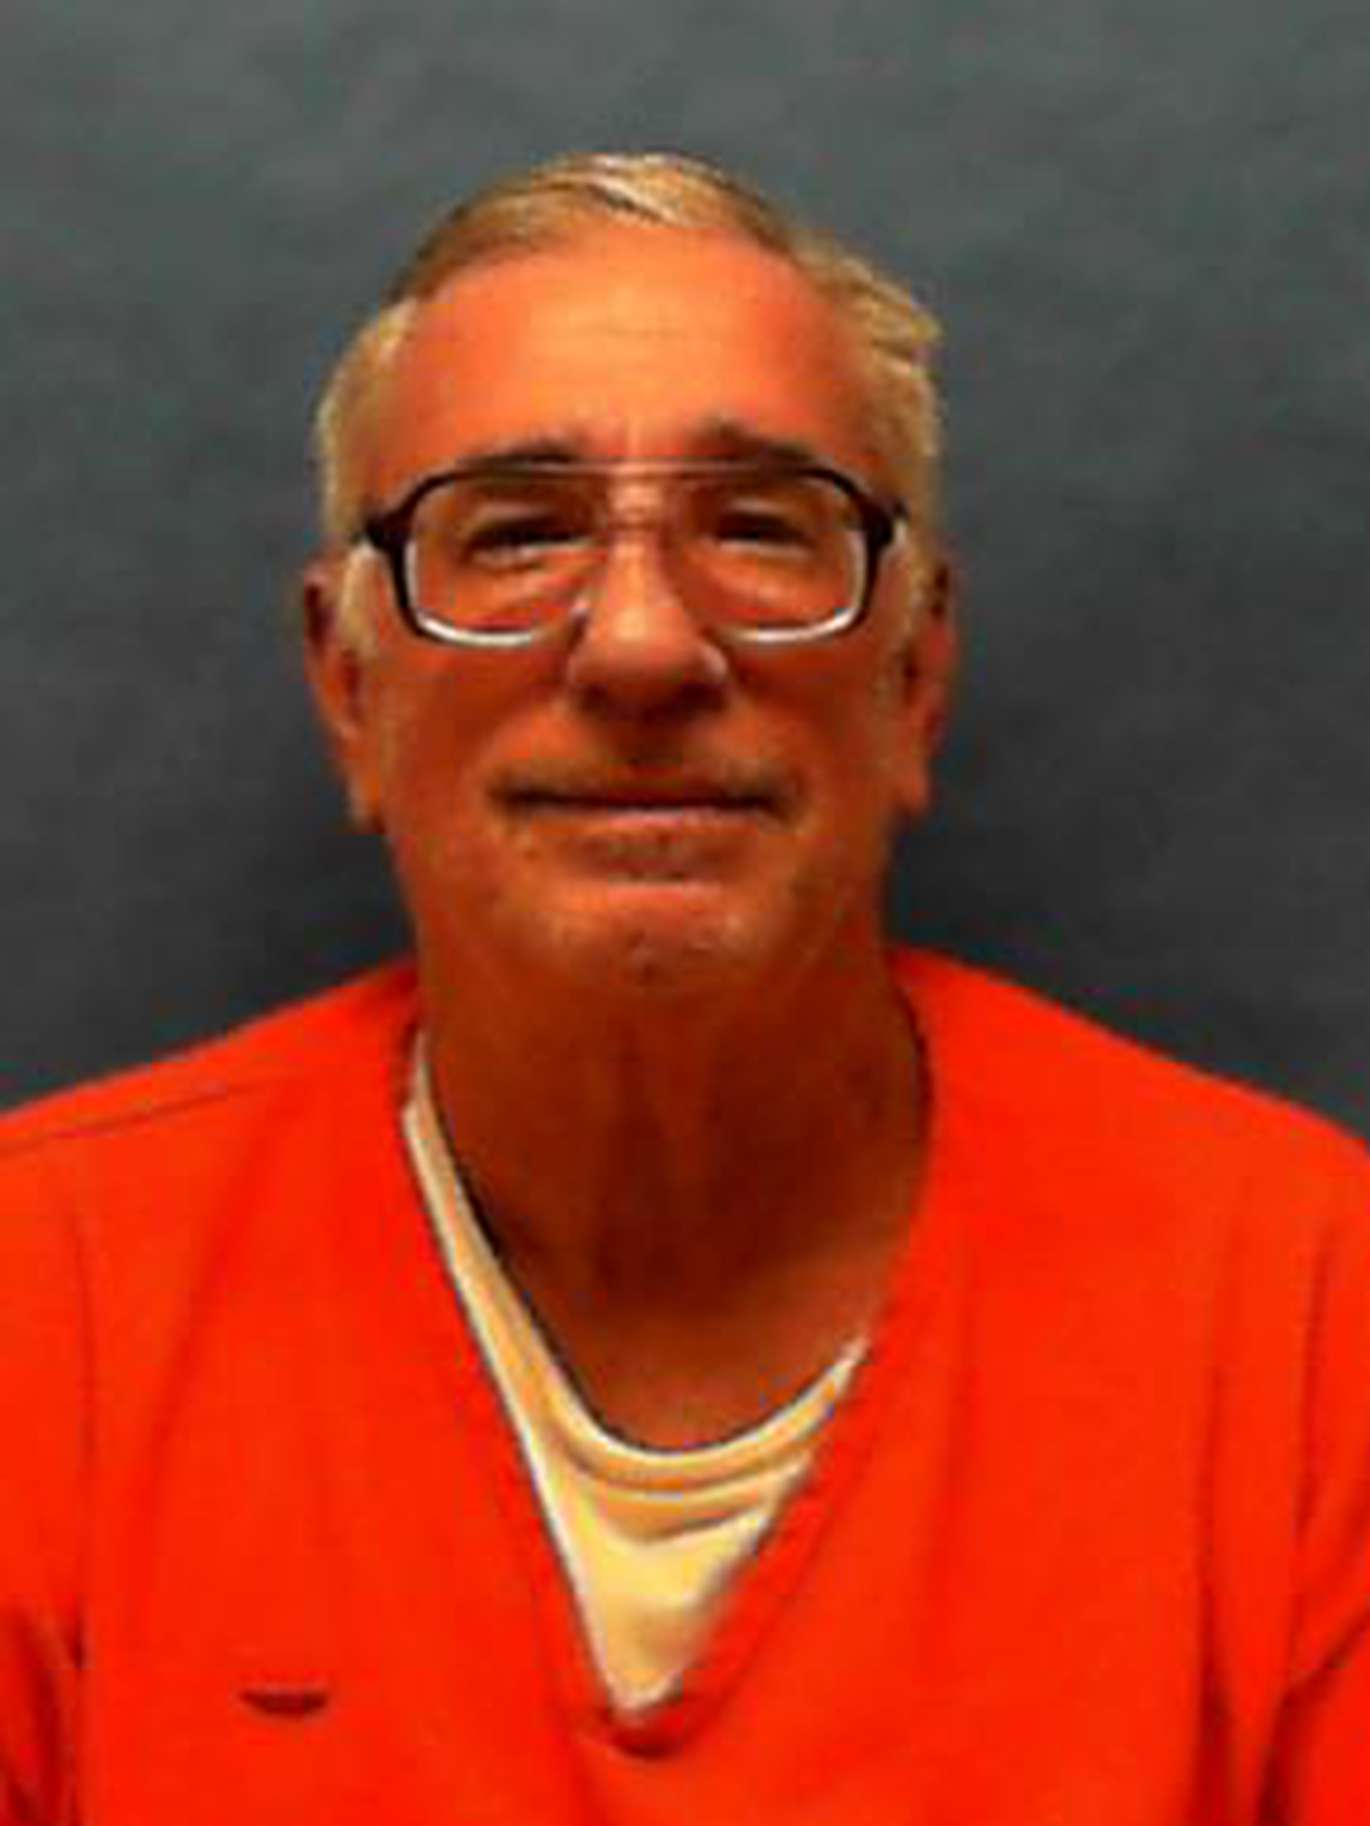 Richard Anderson was convicted of first-degree murder in 1988 for killing Robert Grantham, who attempted to solicit Anderson's girlfriend for sexual favors. He's been on death row since Feb. 29, 1988.